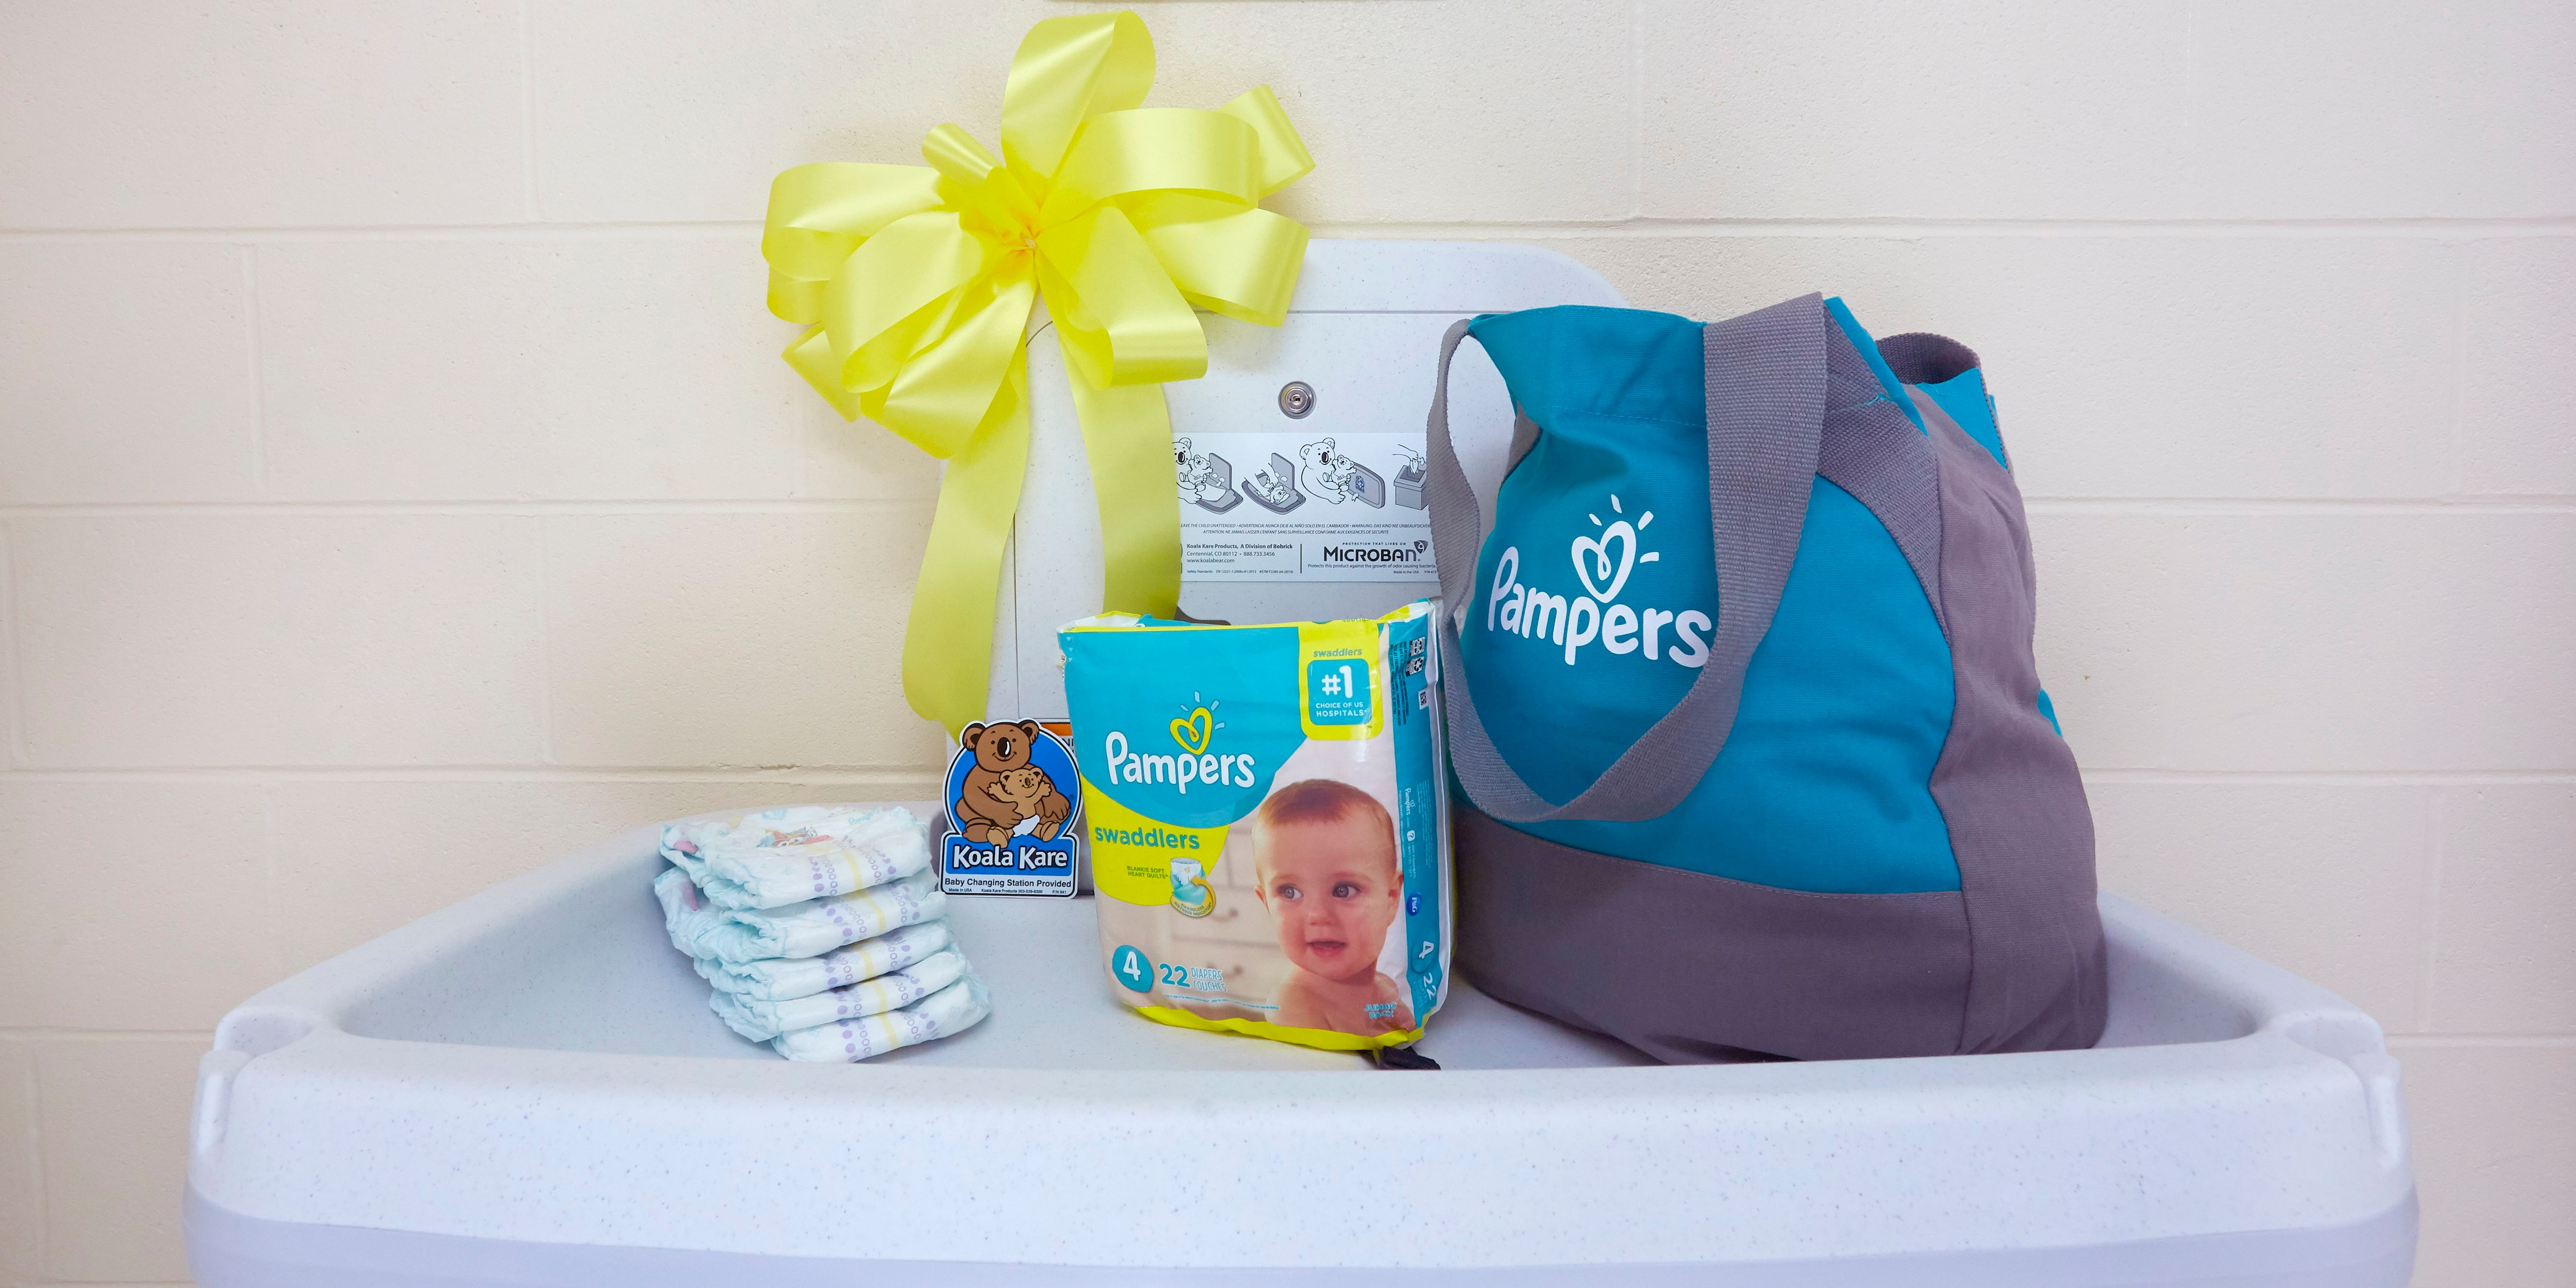 Dads rejoice! Pampers to install 5,000 changing tables in men's restrooms